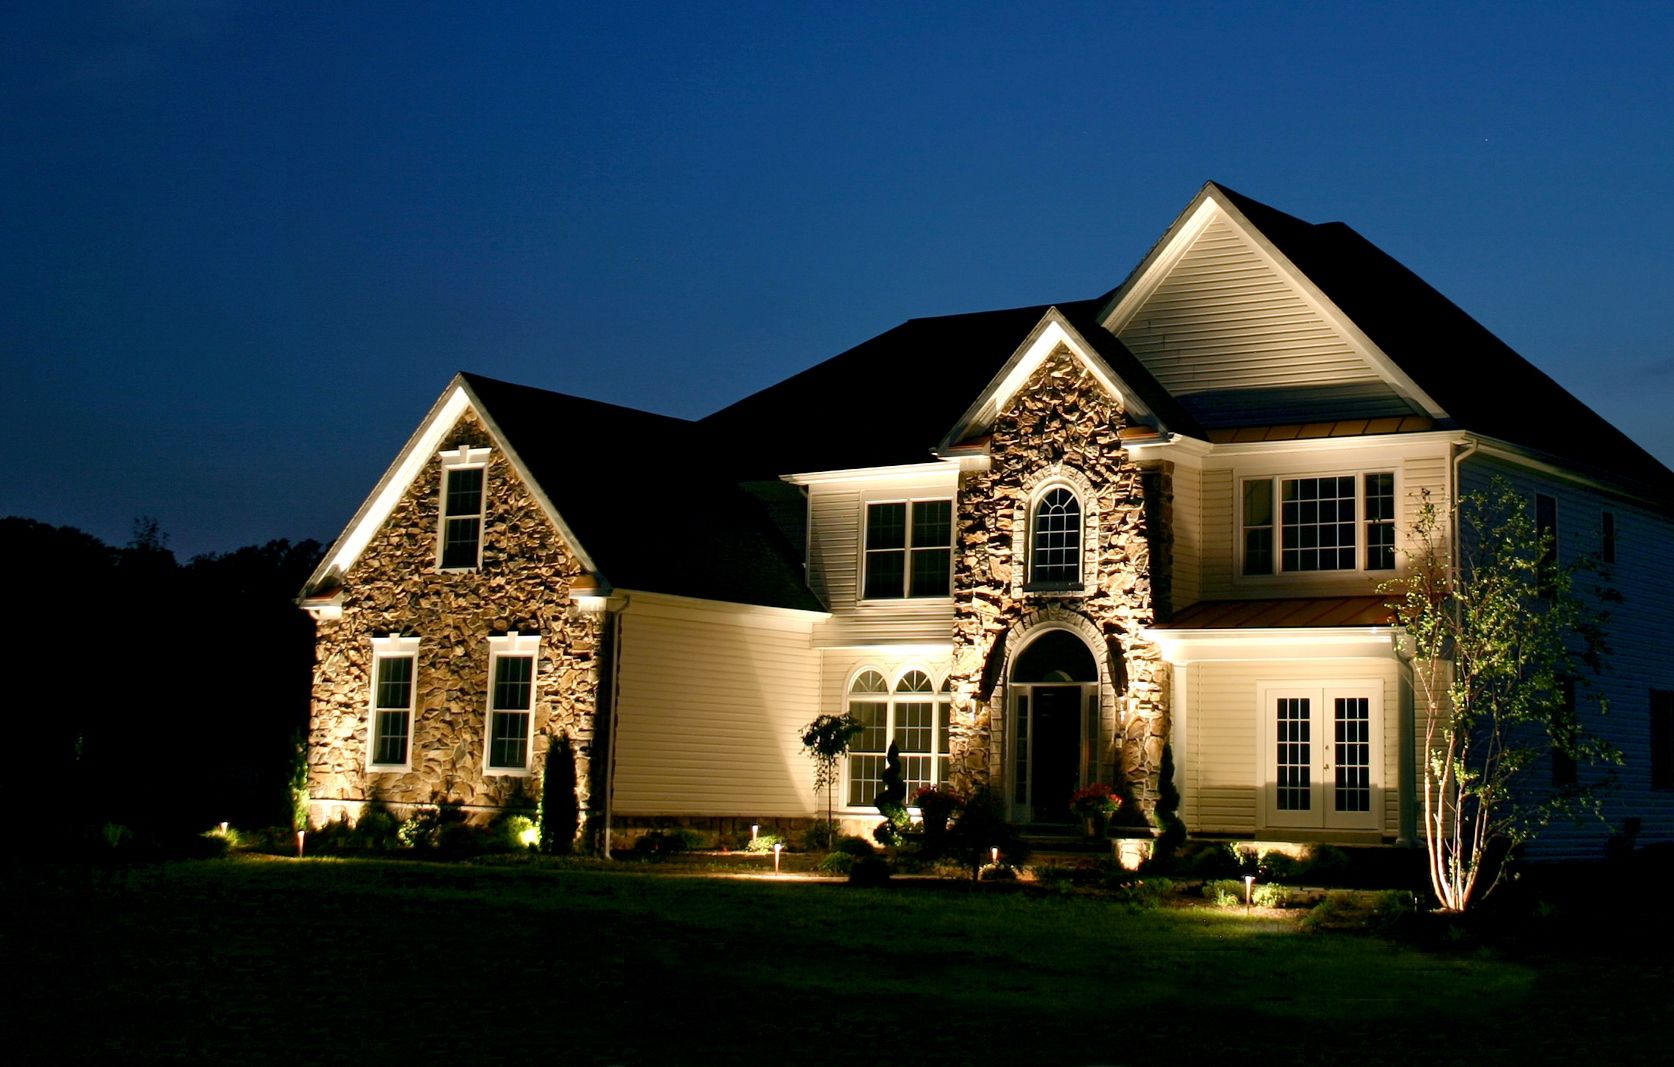 Tips for choosing and installing landscape lighting tips for choosing and installing landscape lighting aloadofball Image collections